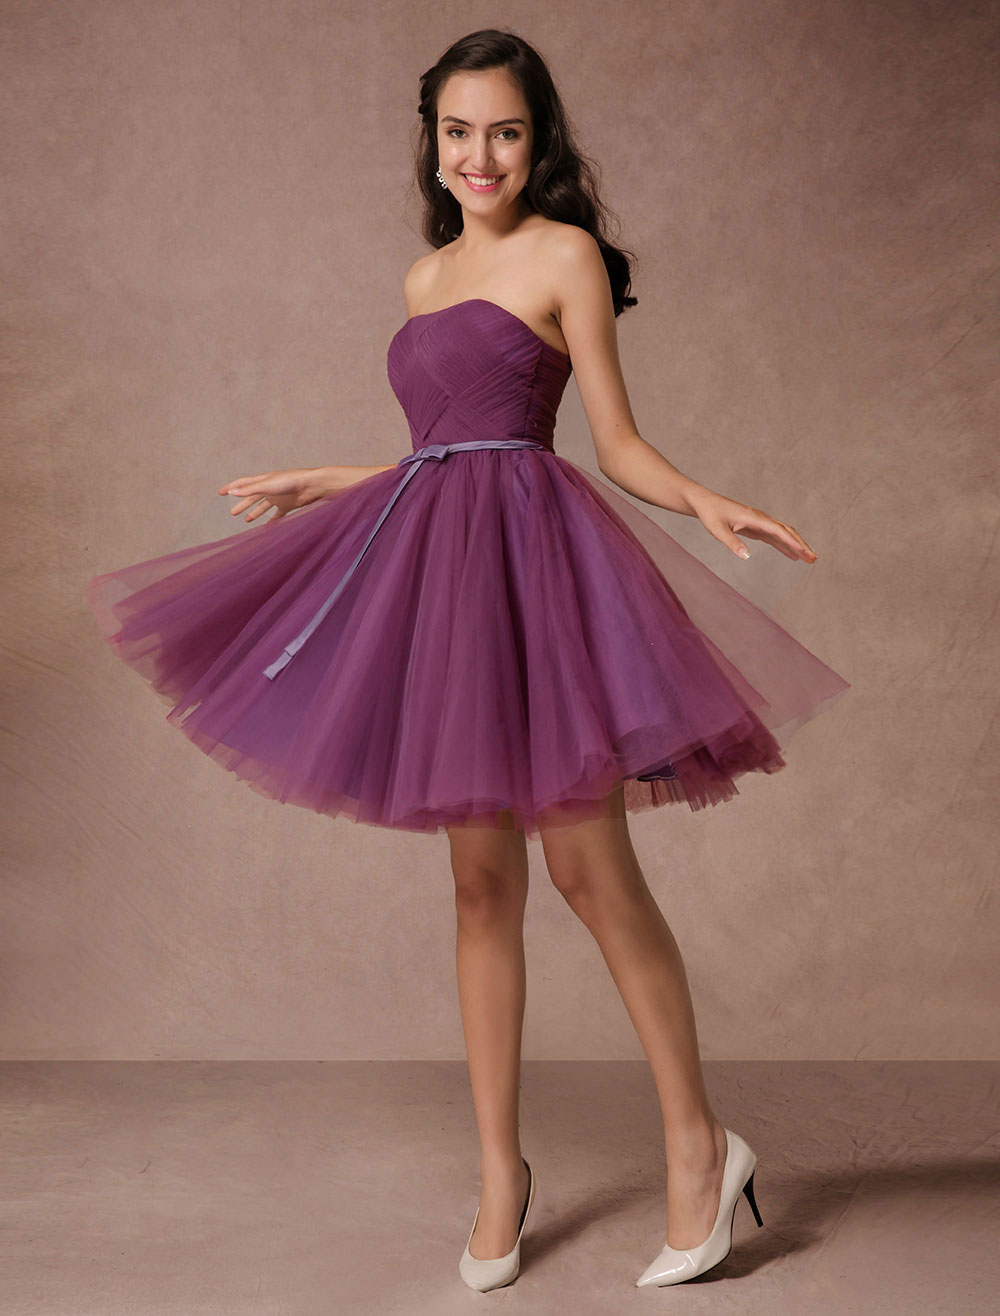 30fa74b2557 Short Bridesmaid Dress Plum Tulle Strapless Homecoming Dress Short Prom  Dress Backless Woven Cocktail Dress With Sash - Milanoo.com